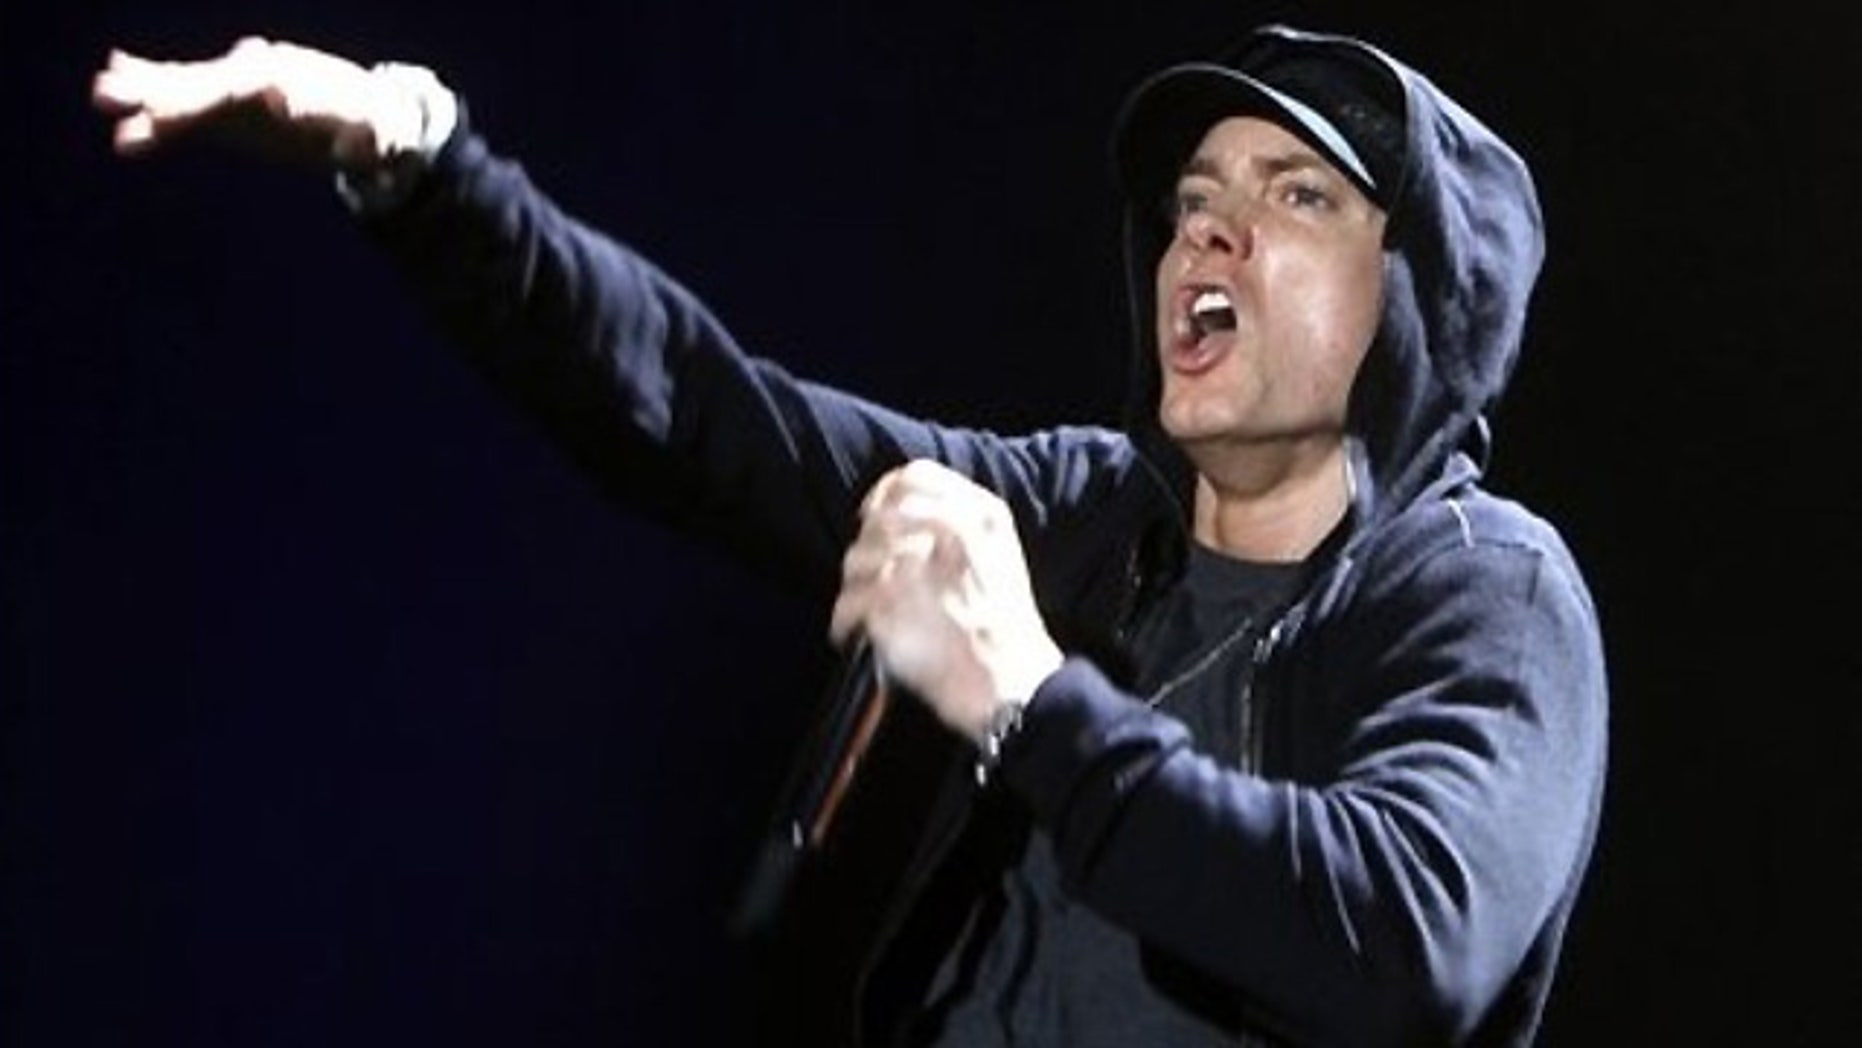 Eminem is hoping for a clean sweep at the Grammys.